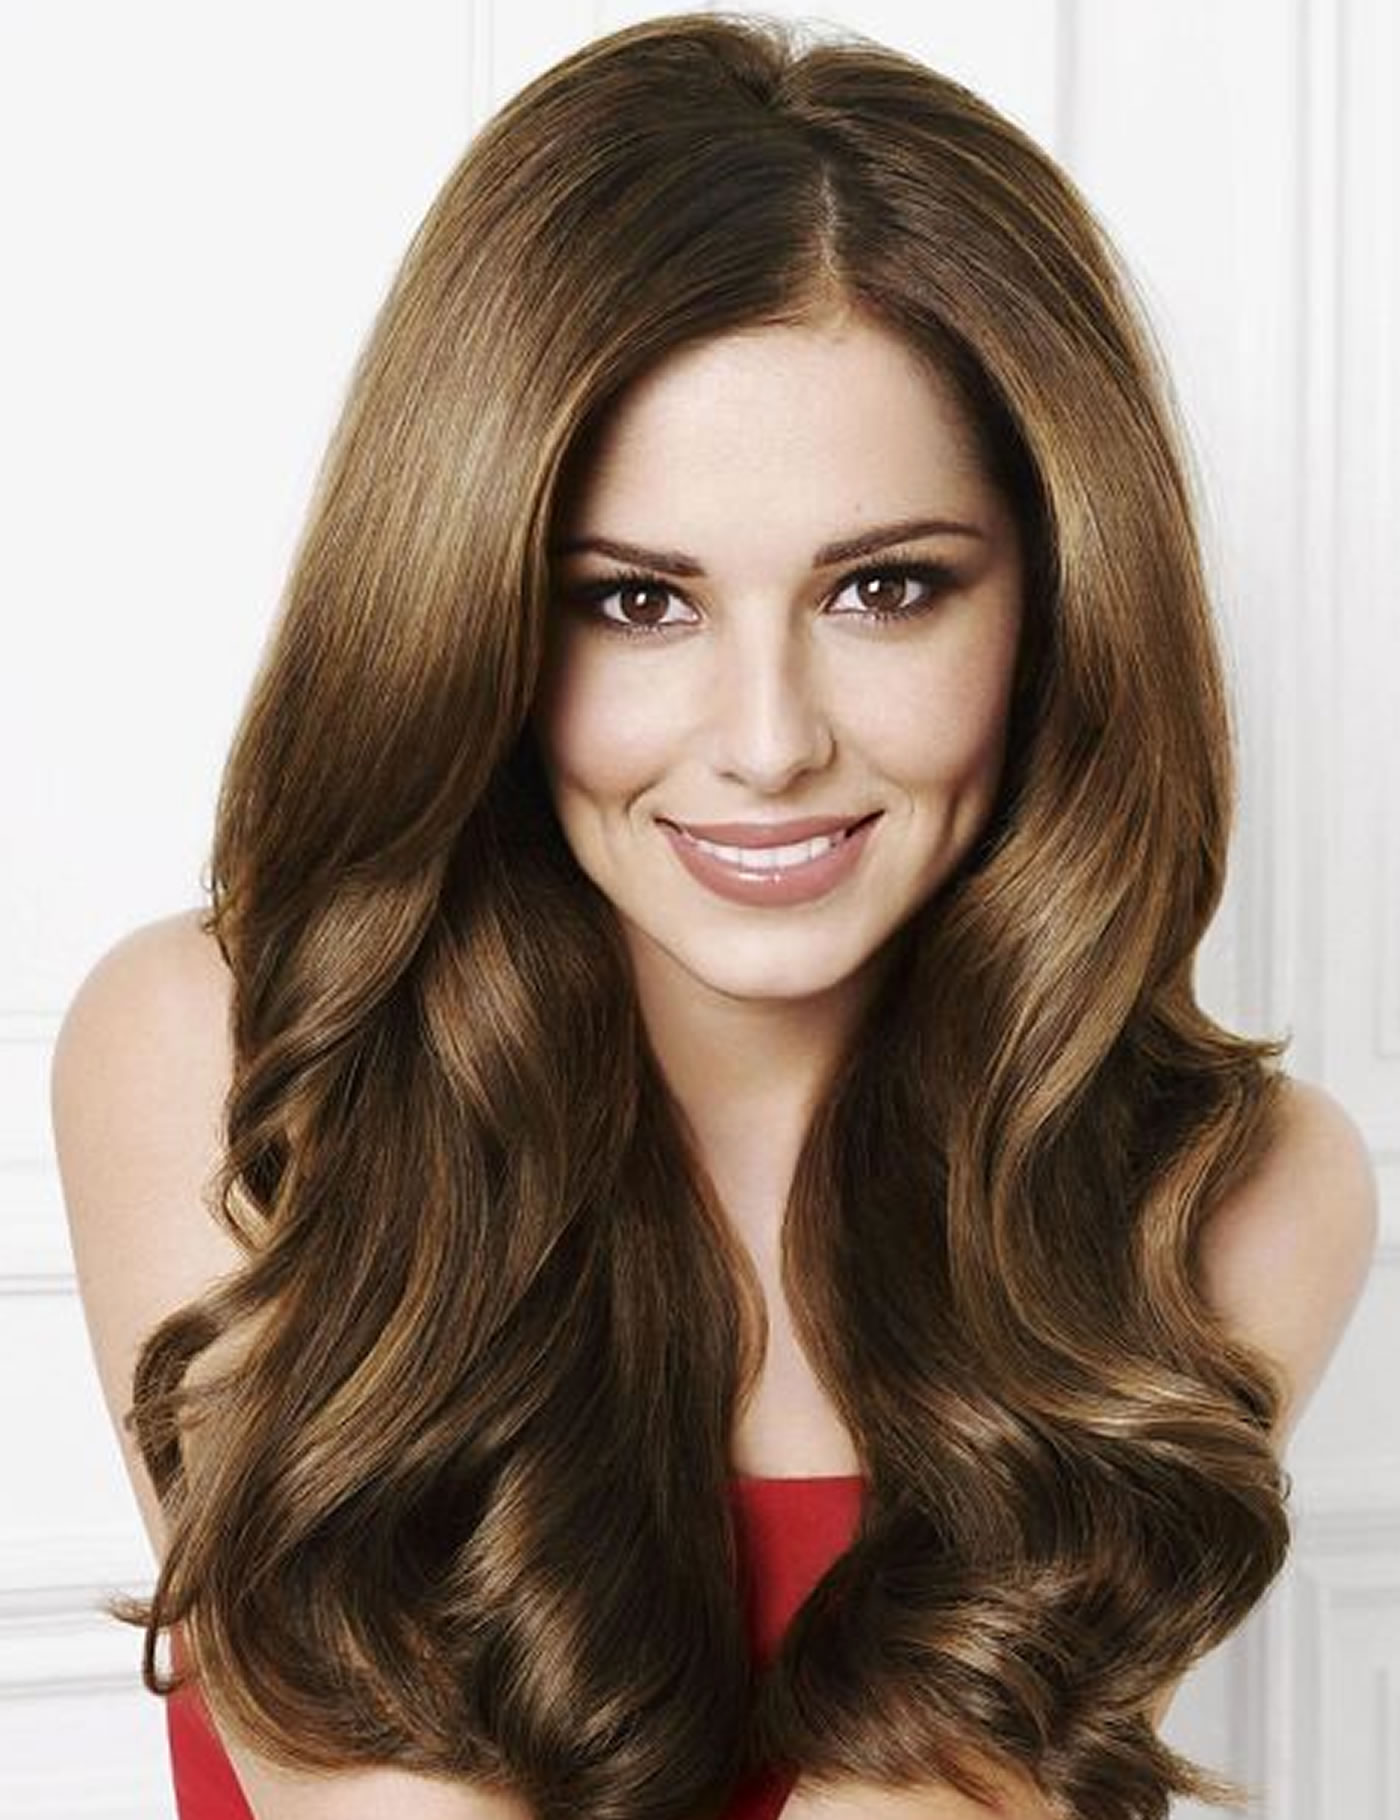 The secret's out - Cheryl Cole's stunning hair is fibre extensions and not the real thing